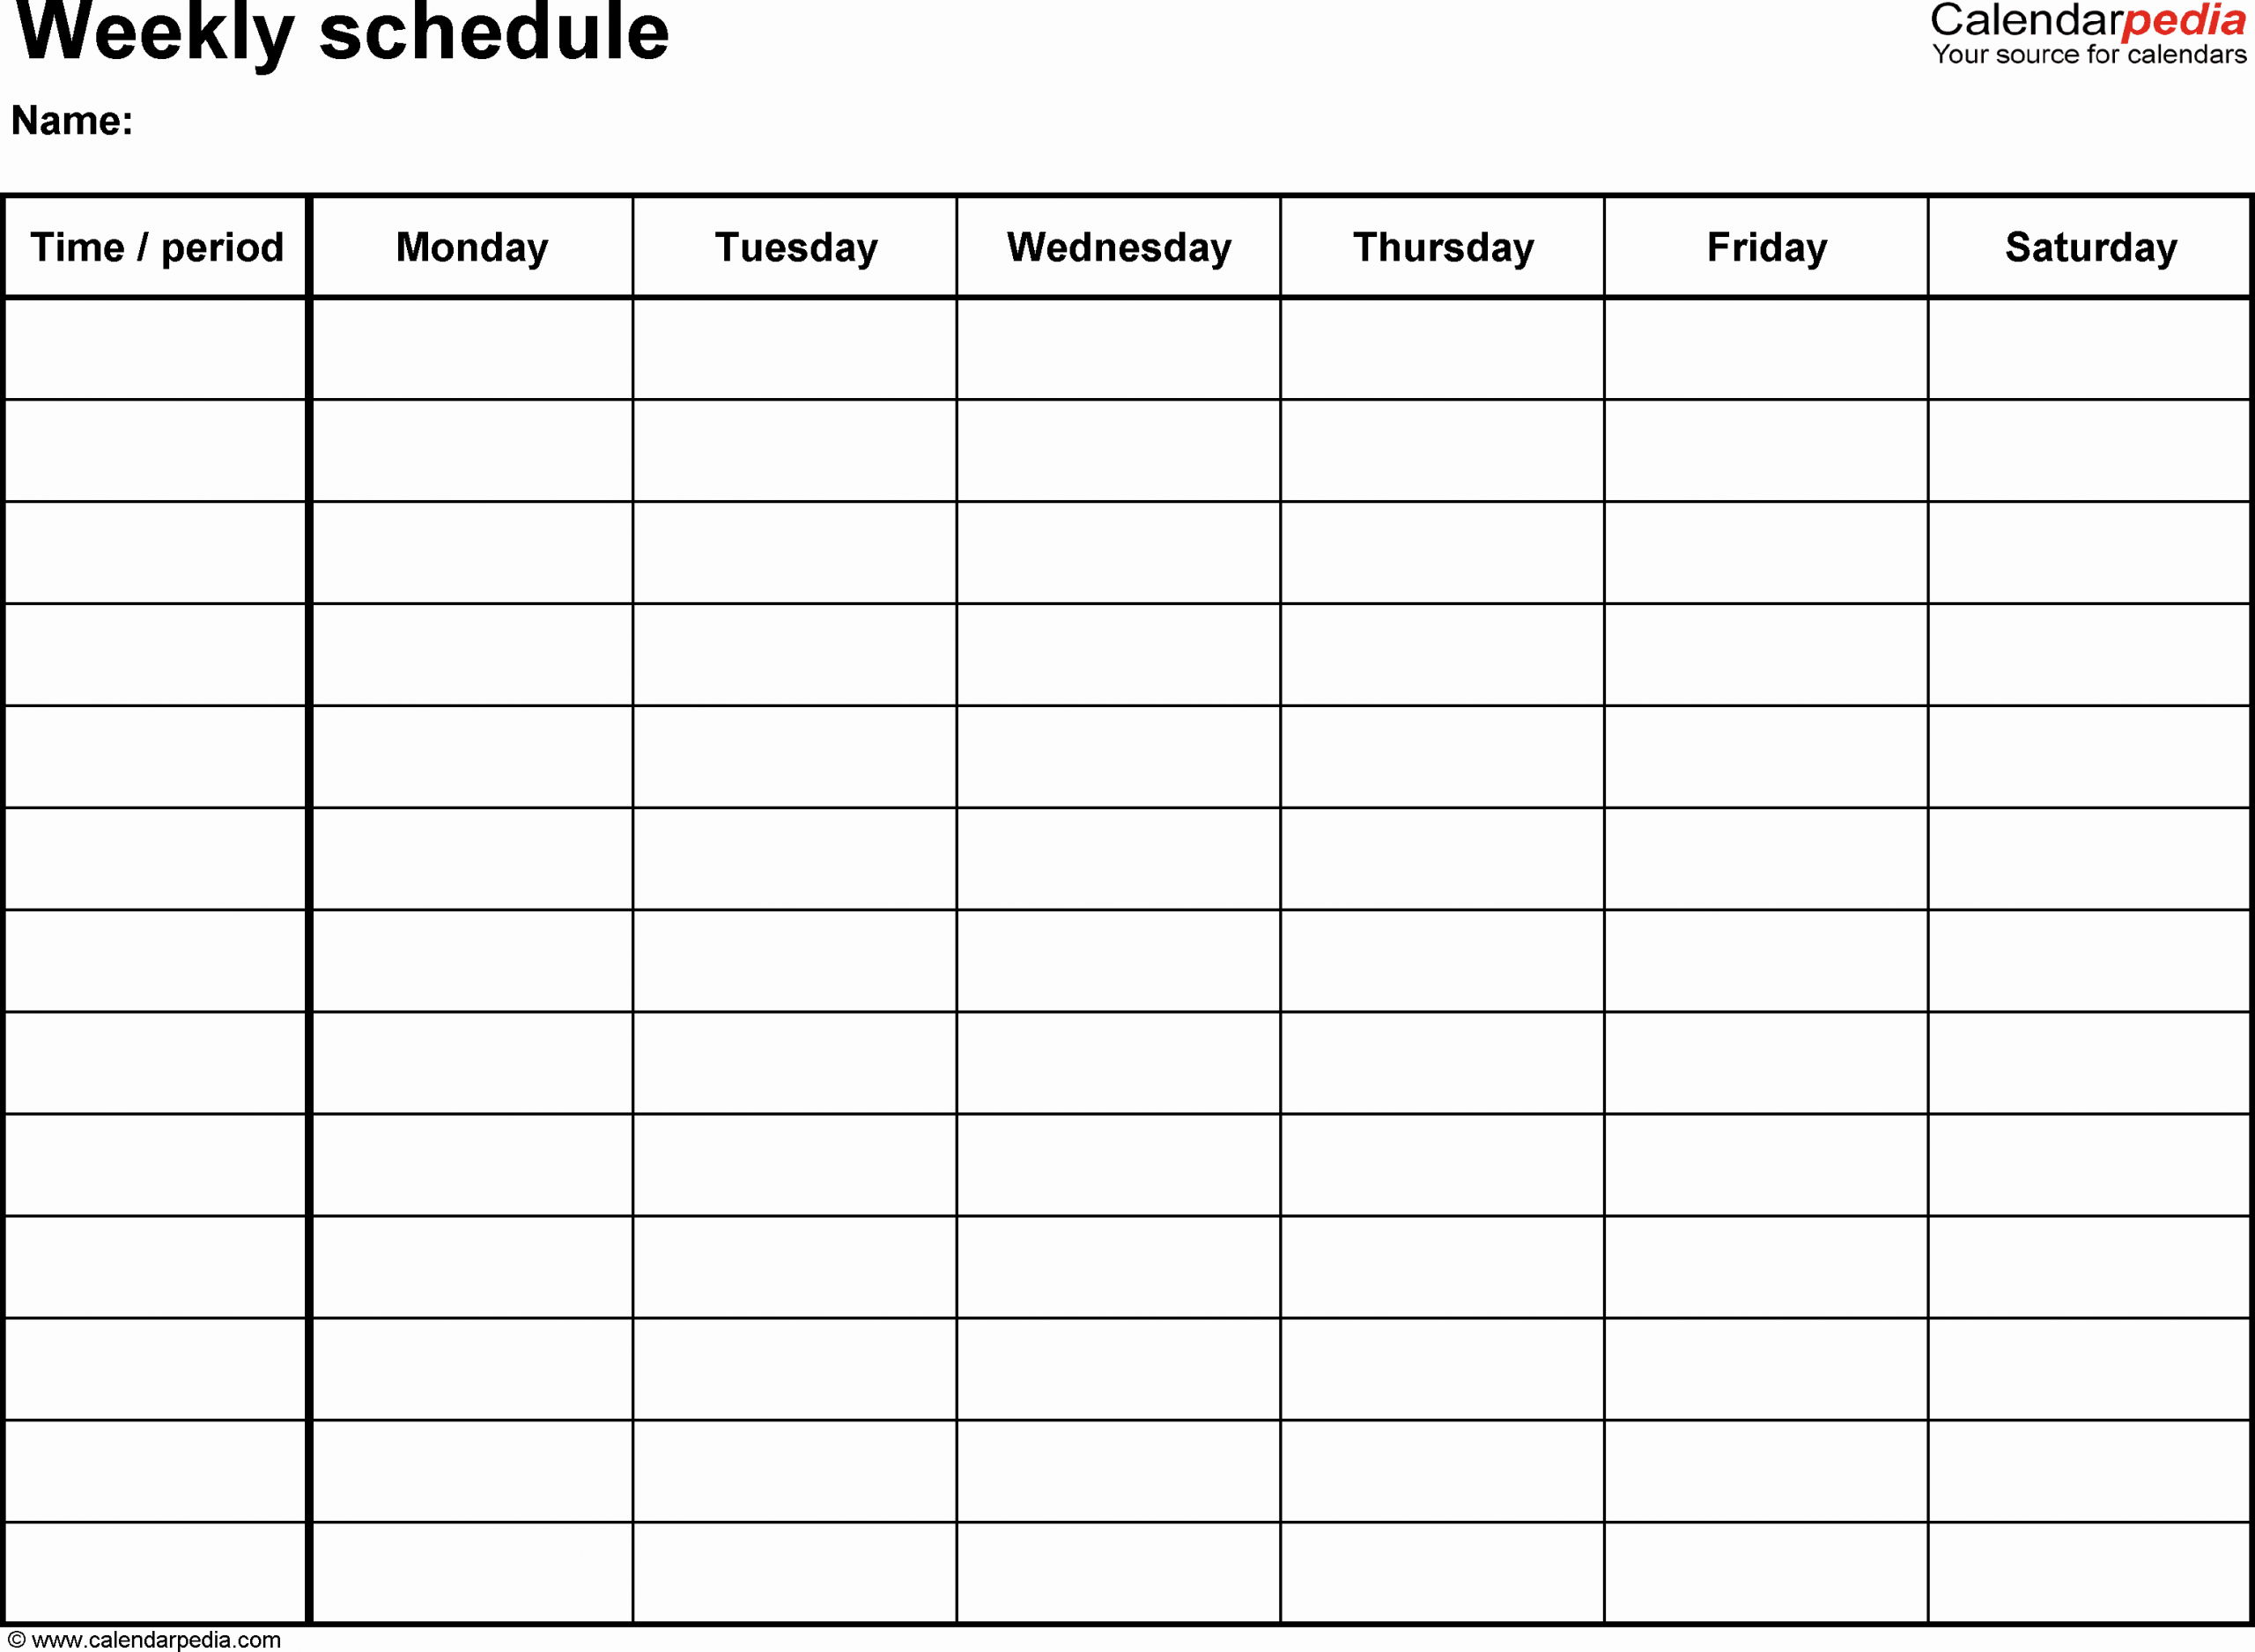 One Day Schedule Template New Free Weekly Schedule Templates for Excel 18 Templates